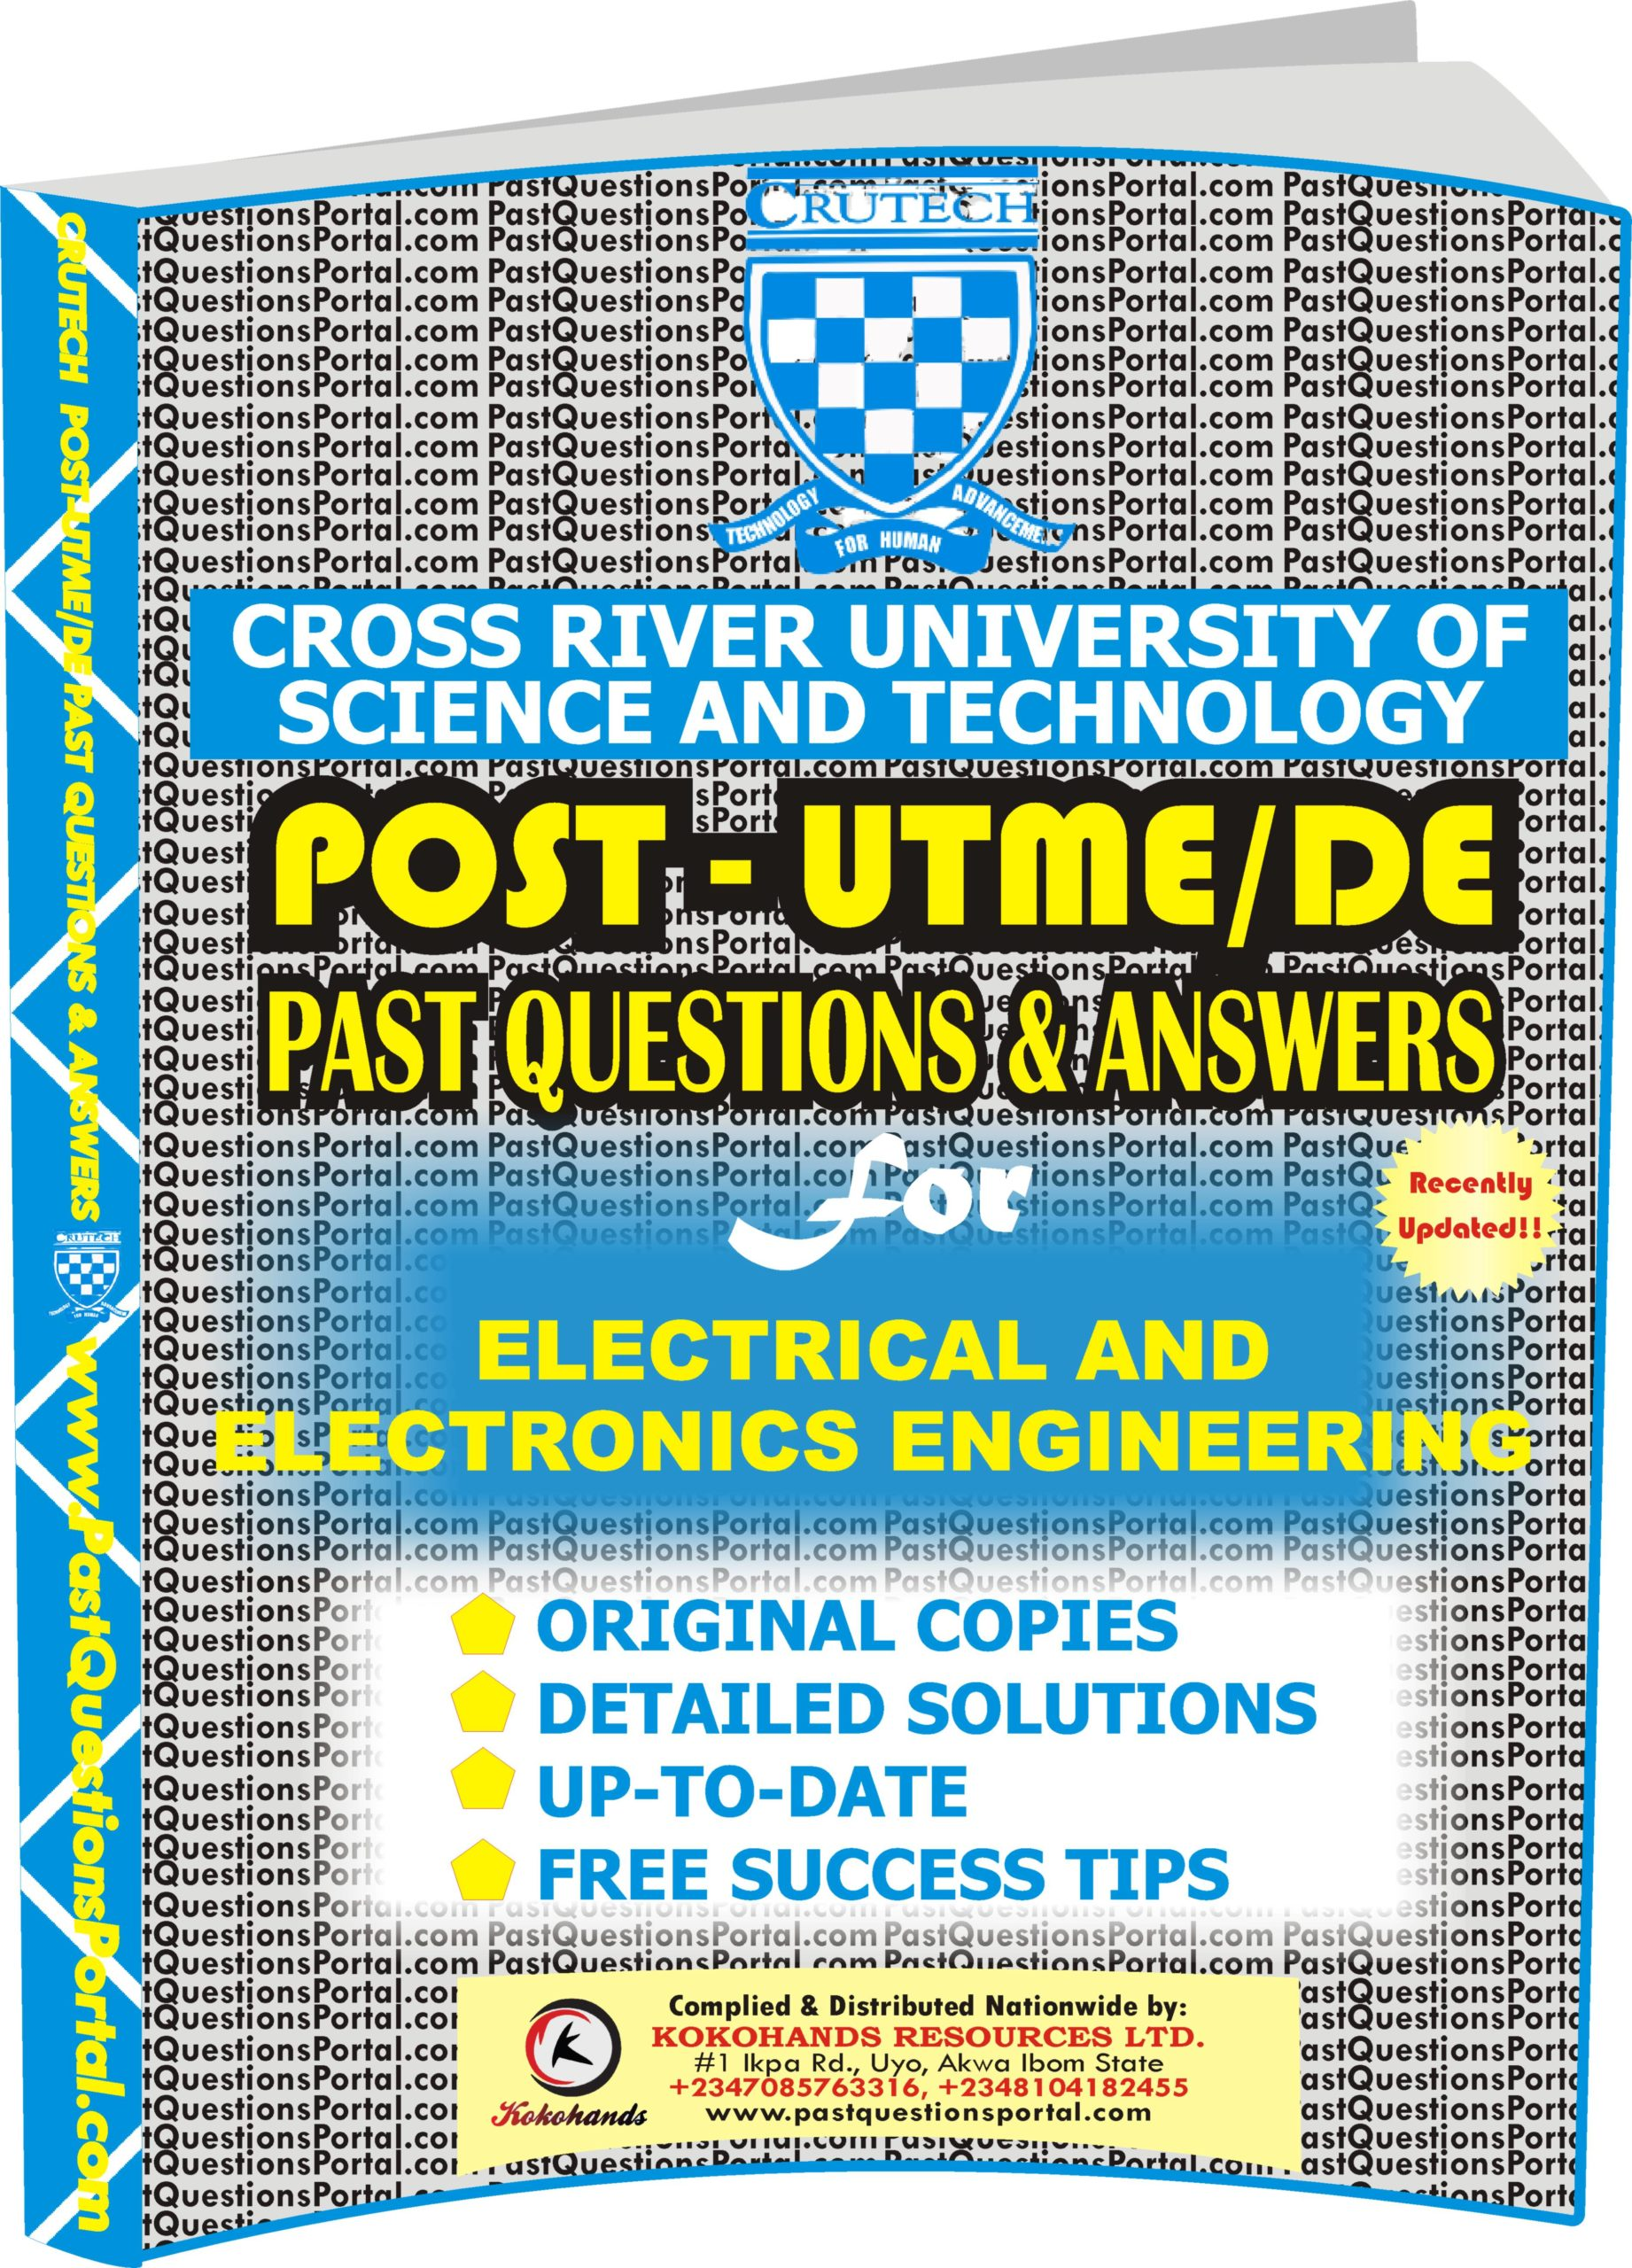 CRUTECH Post UTME Past Questions for Electrical and Electronics Engineering